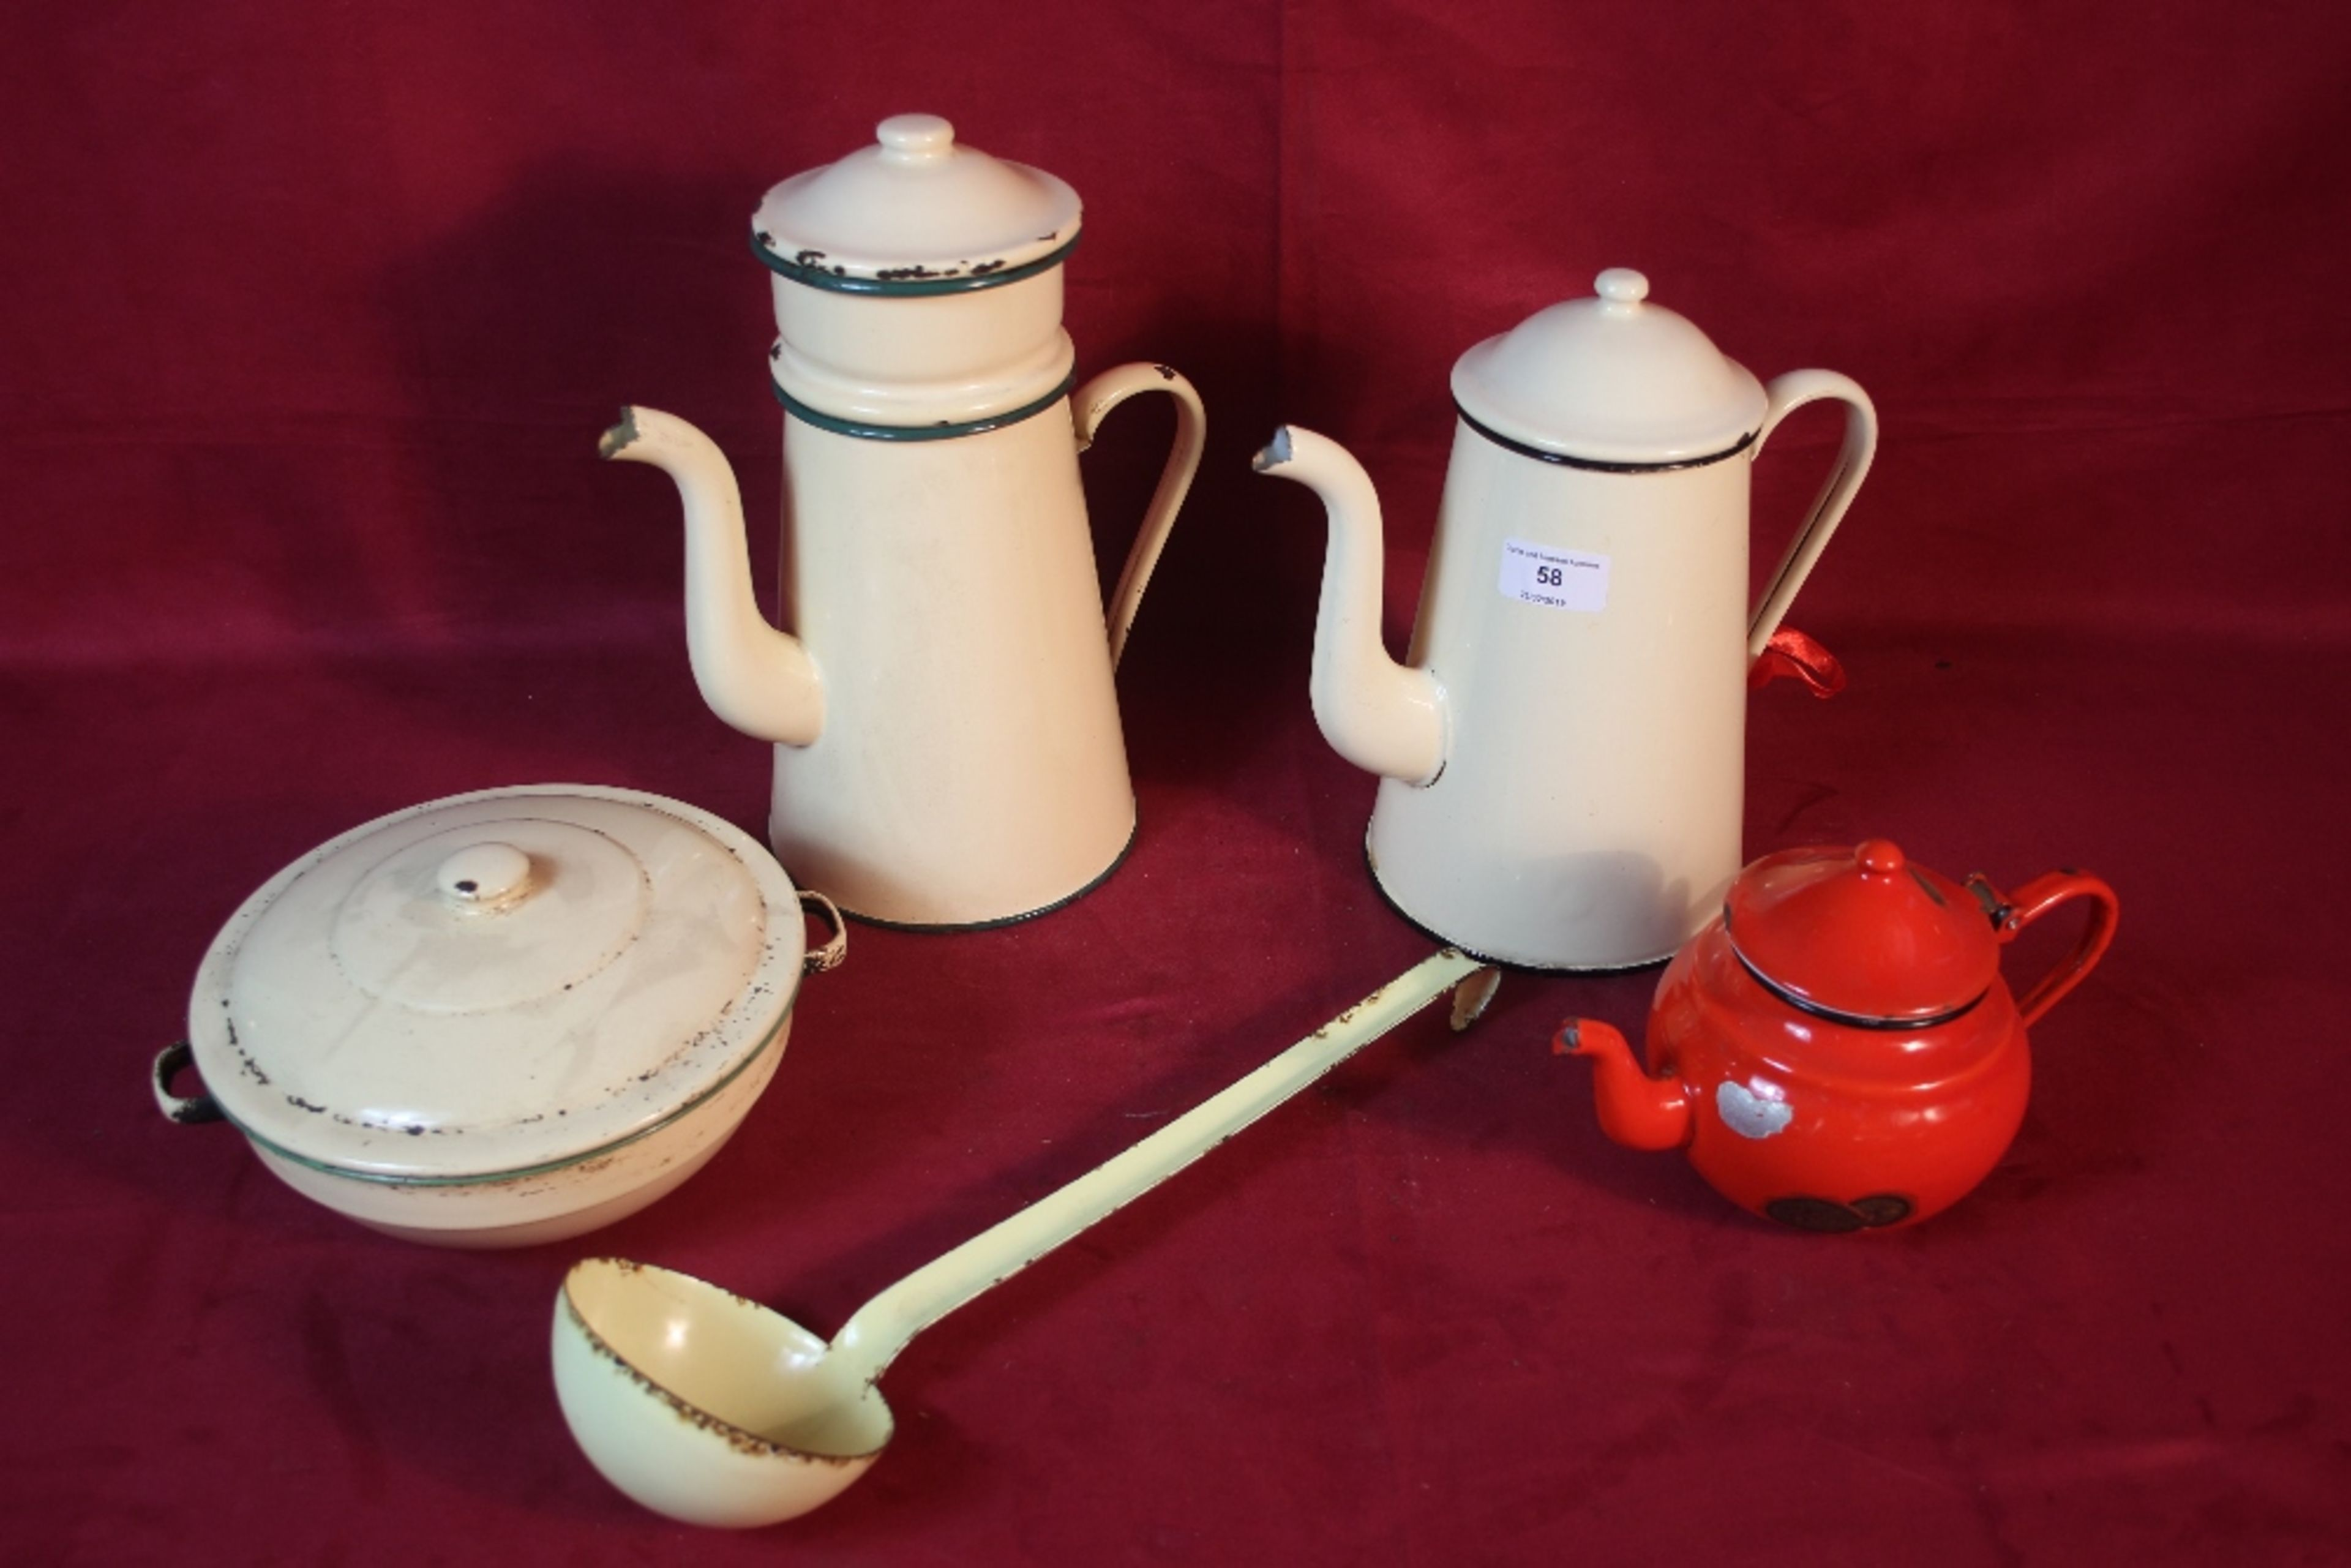 Lot 58 - A quantity of enamelware to include two jugs,a lad